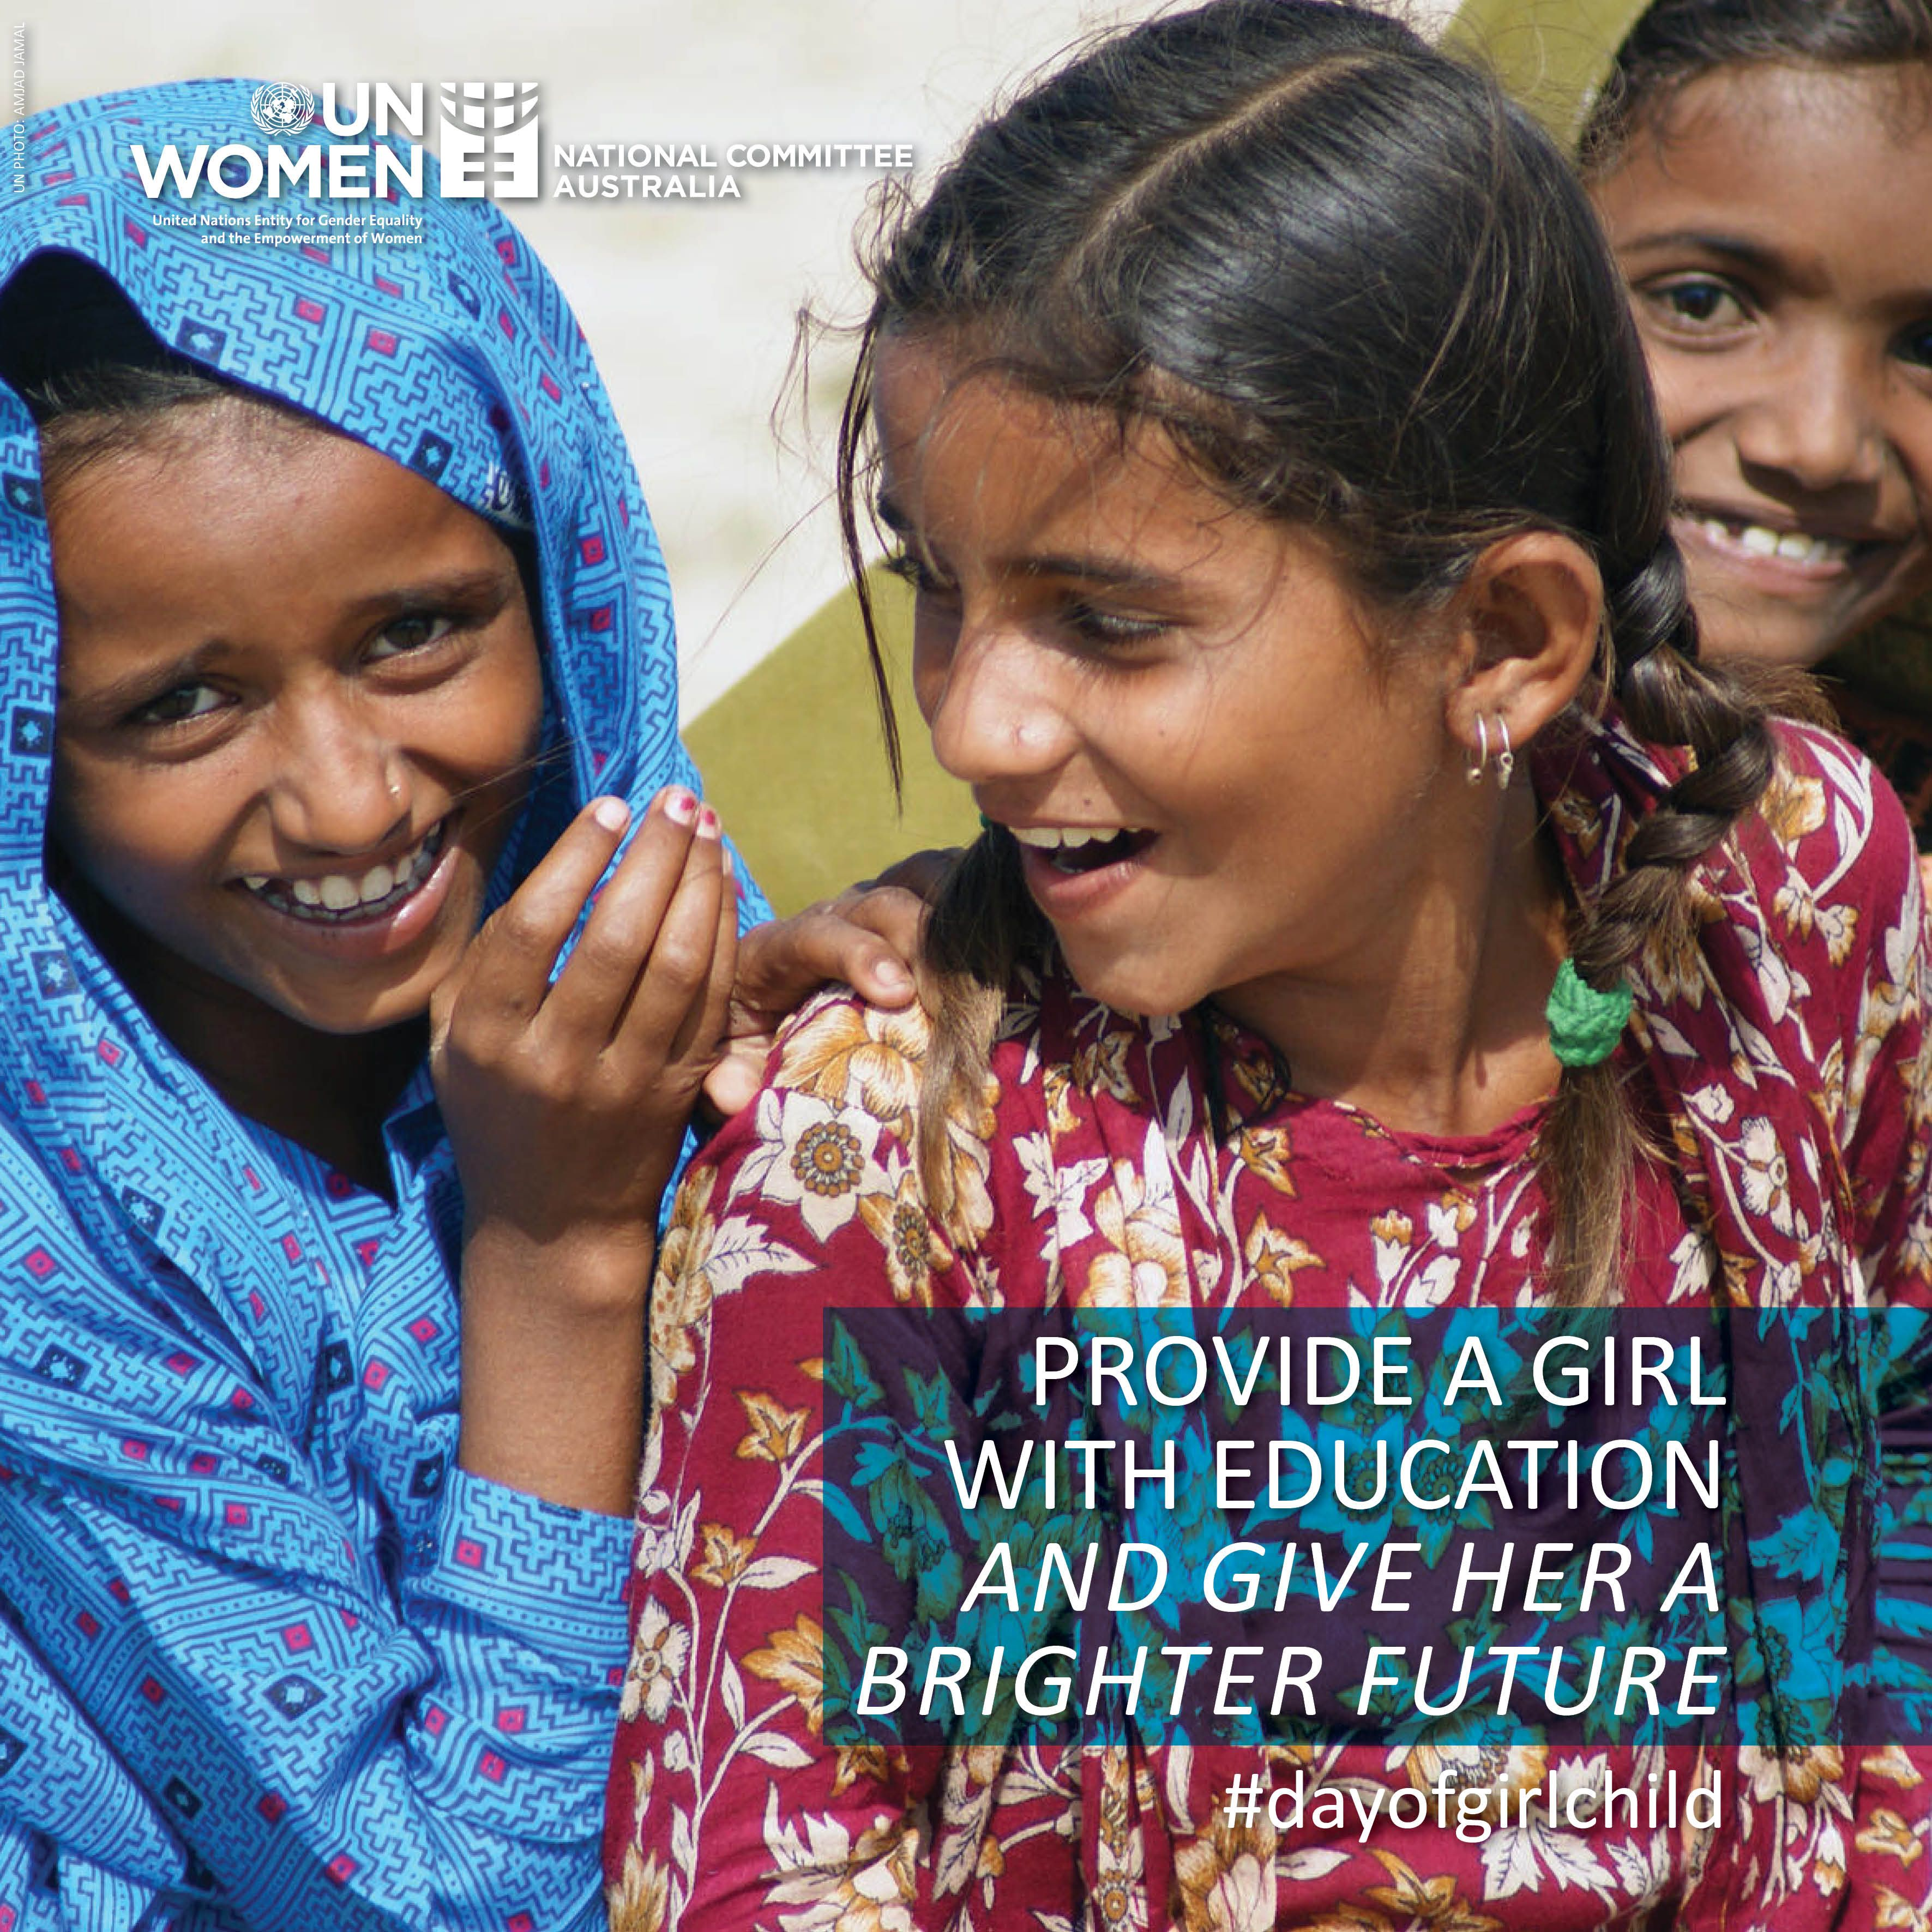 Provide a girl with education and give her a brighter future on Day of the Girl Child, October 11.